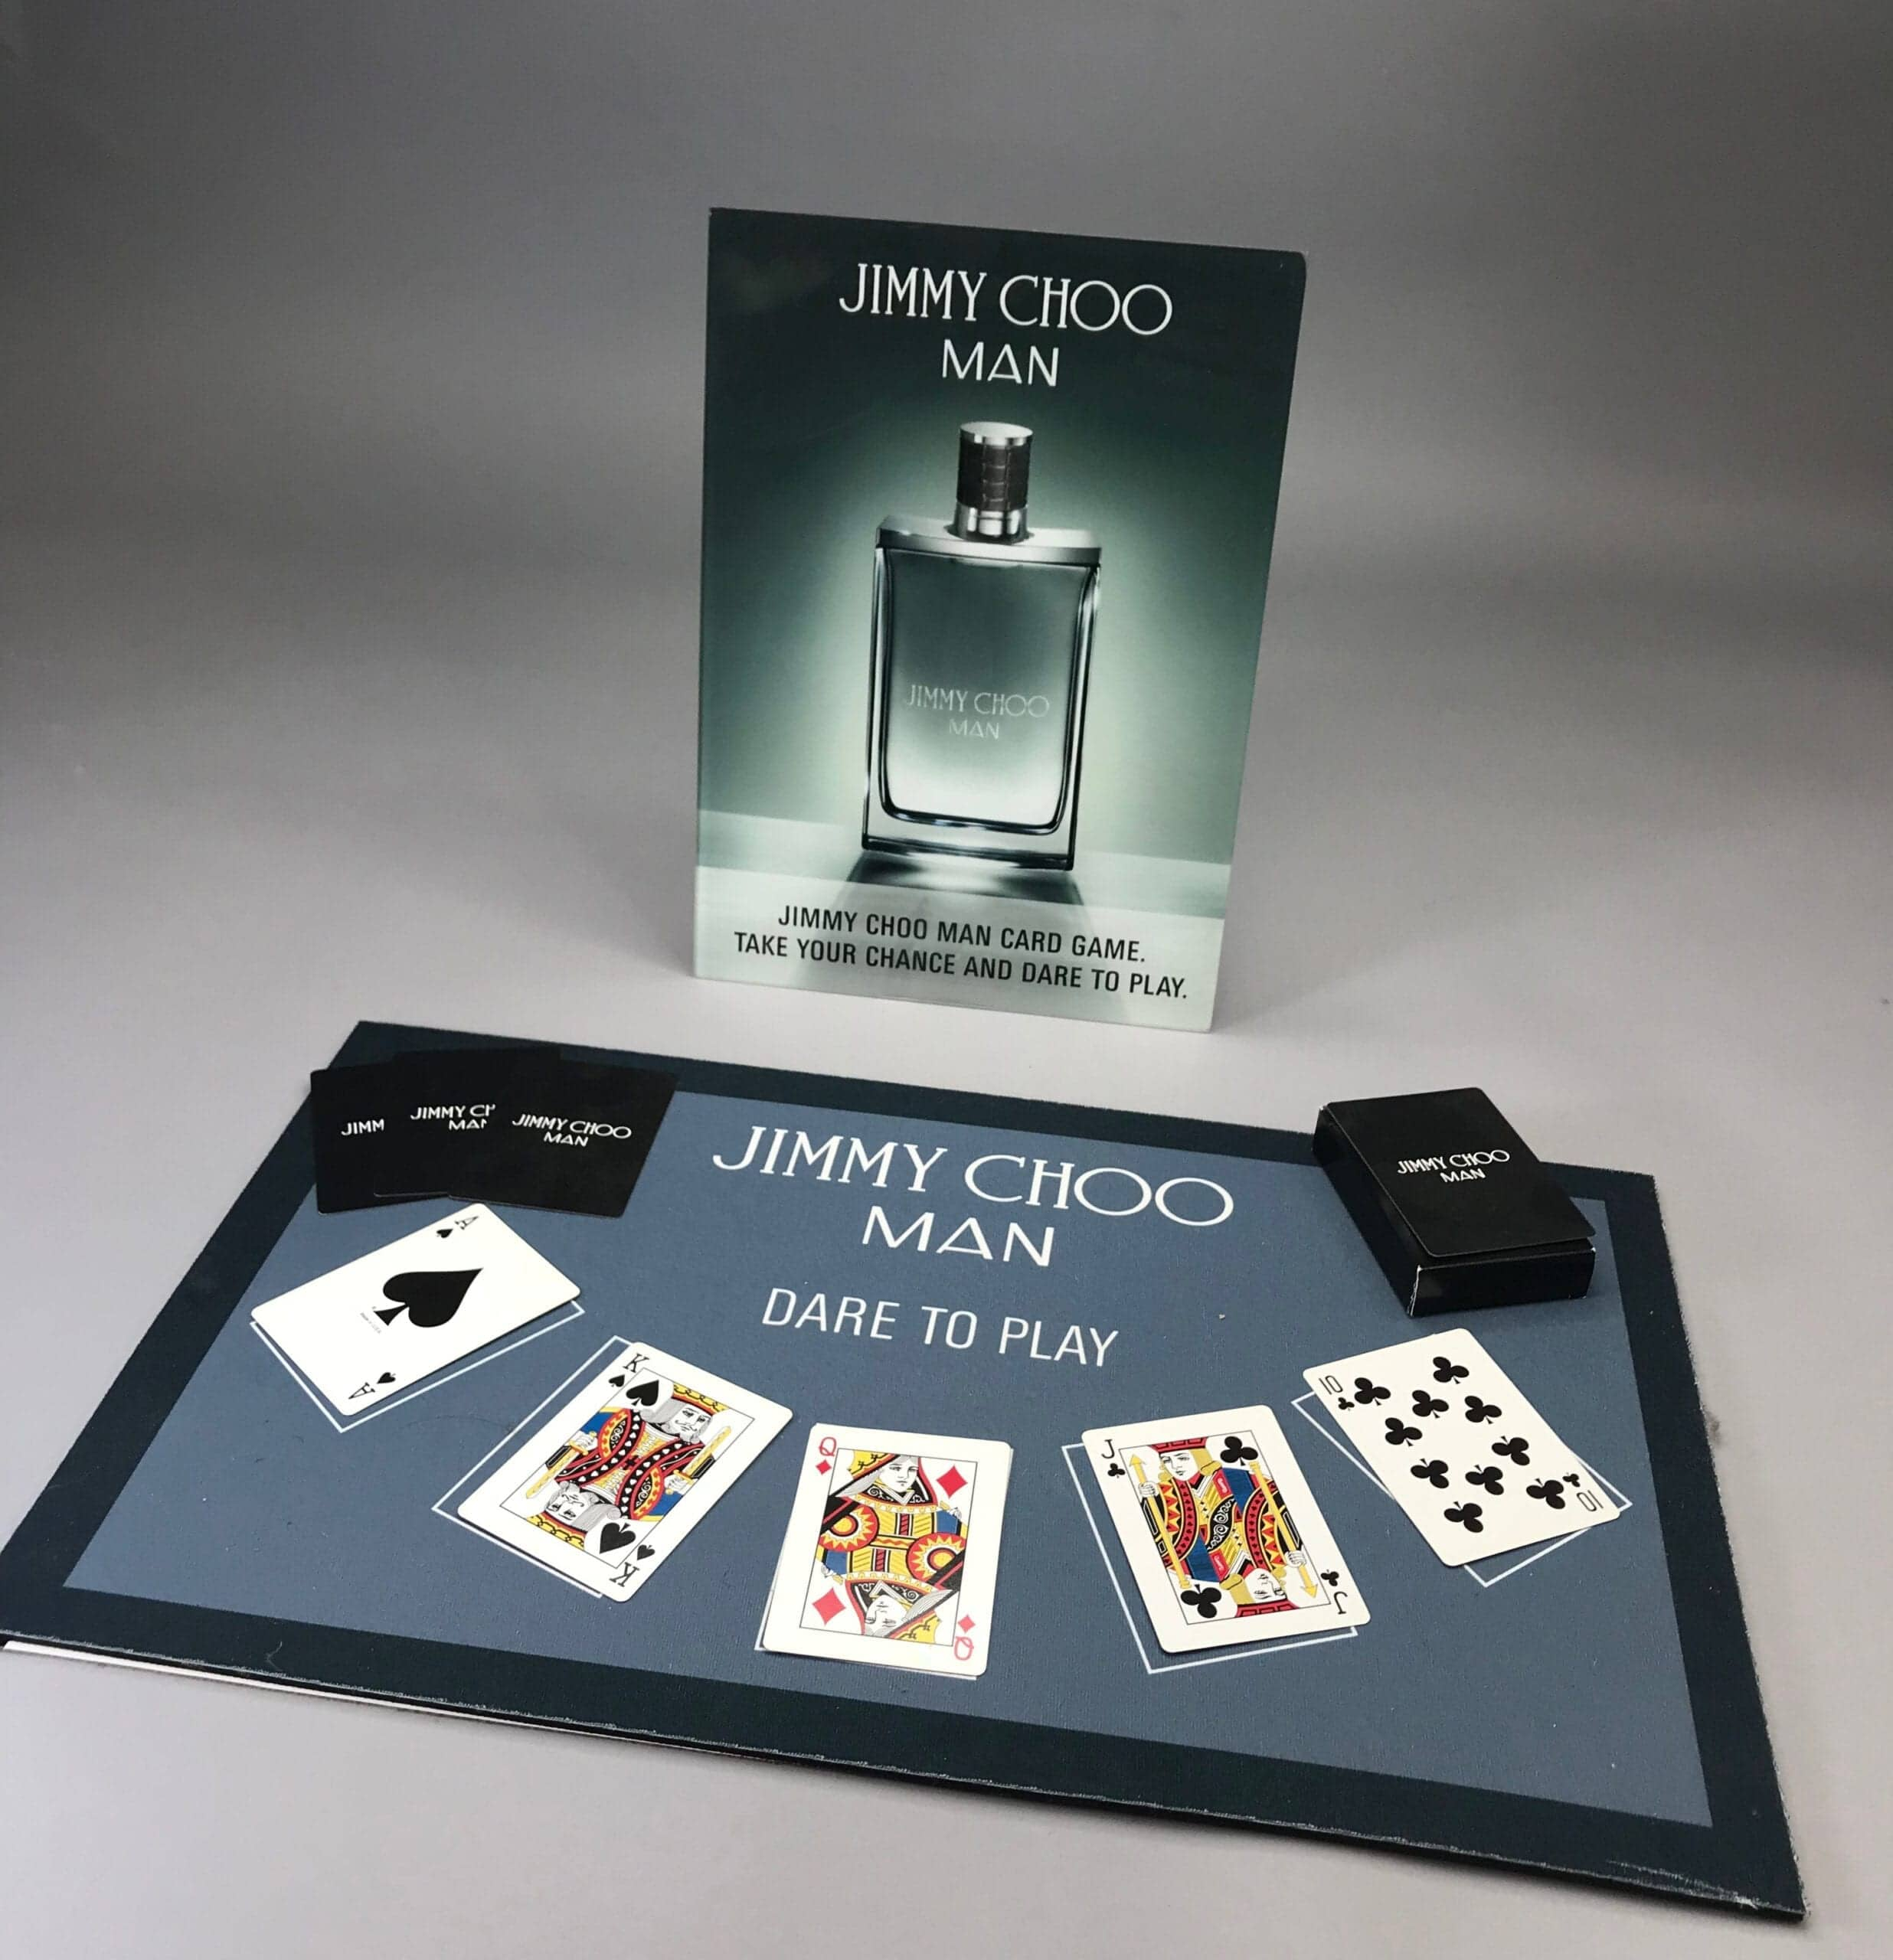 At PPD&G we understand the importance of thinking outside the box and this unique display is no exception. Featuring custom-made trays, custom branded playing cards and a custom acrylic easel back display our high quality manufacturing brought the vision to life.